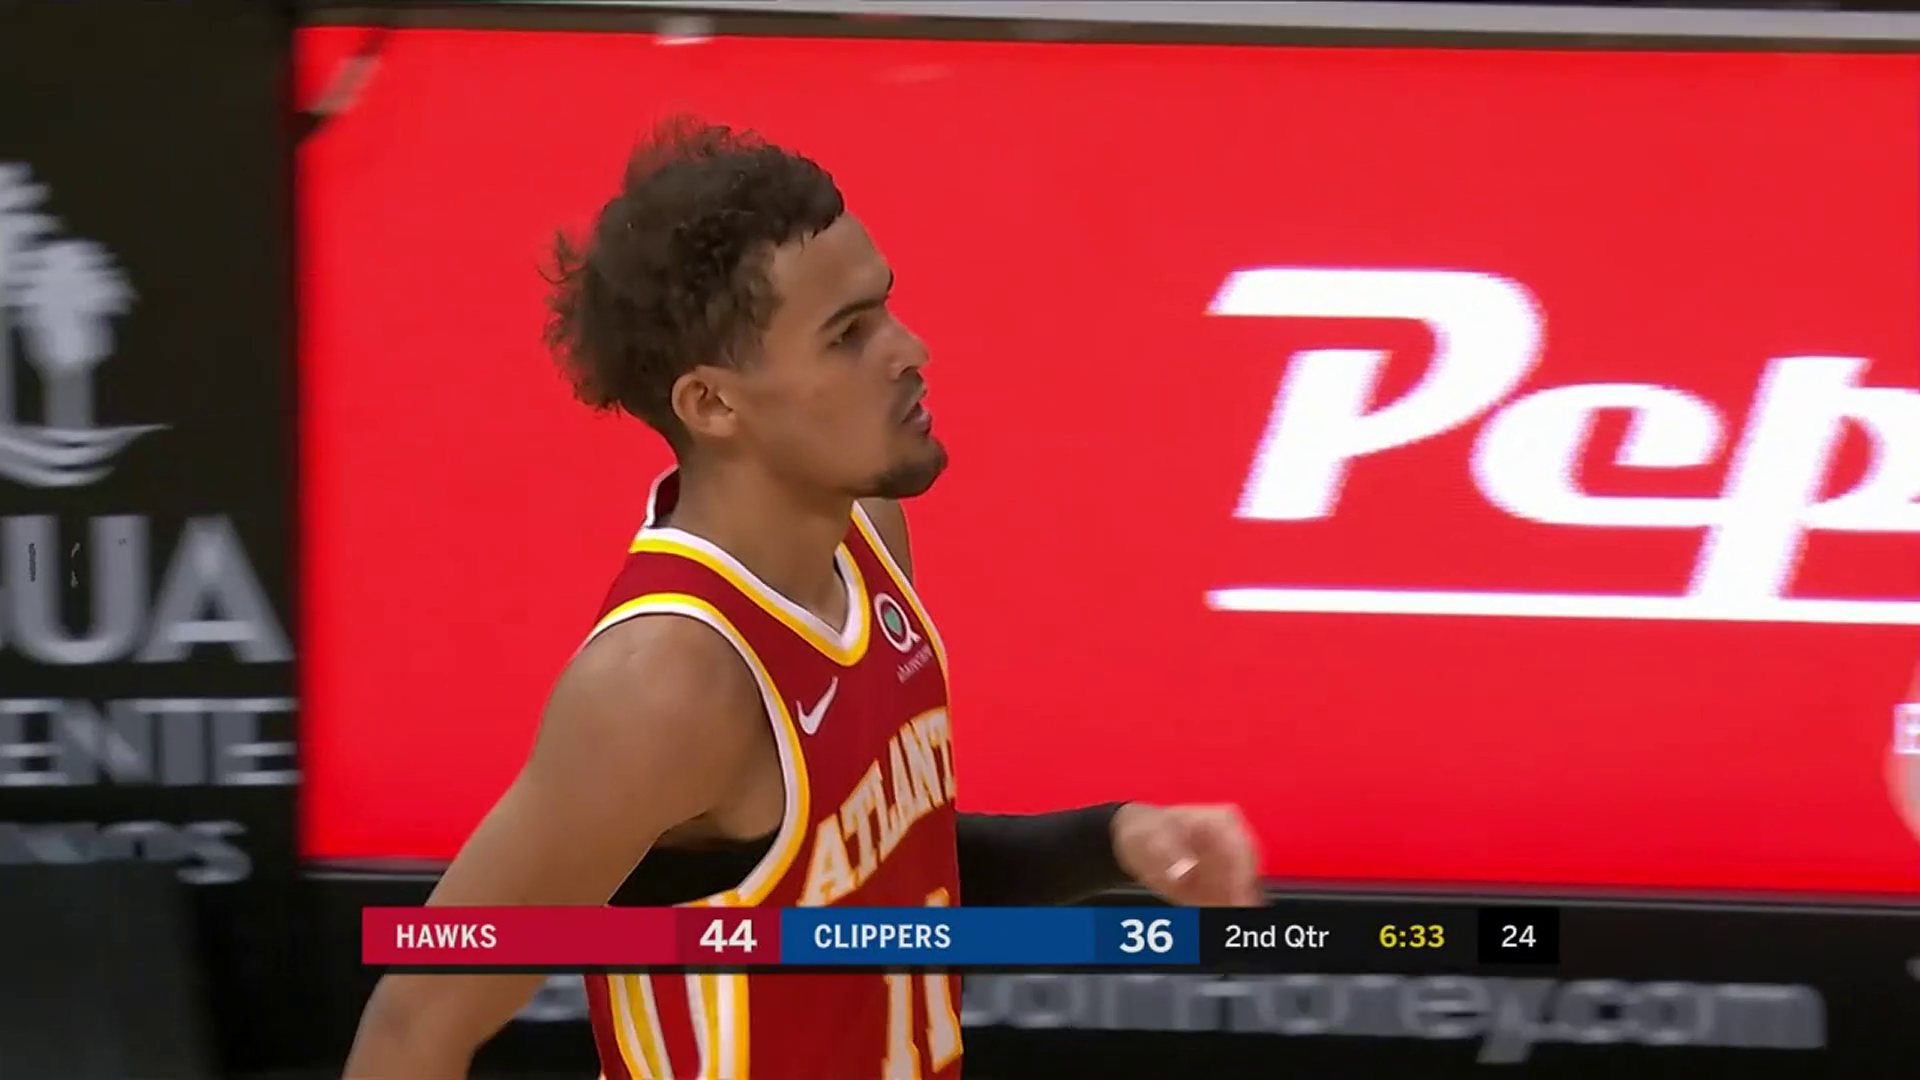 Young Notches 28 Points, 8 Assists vs. Clippers